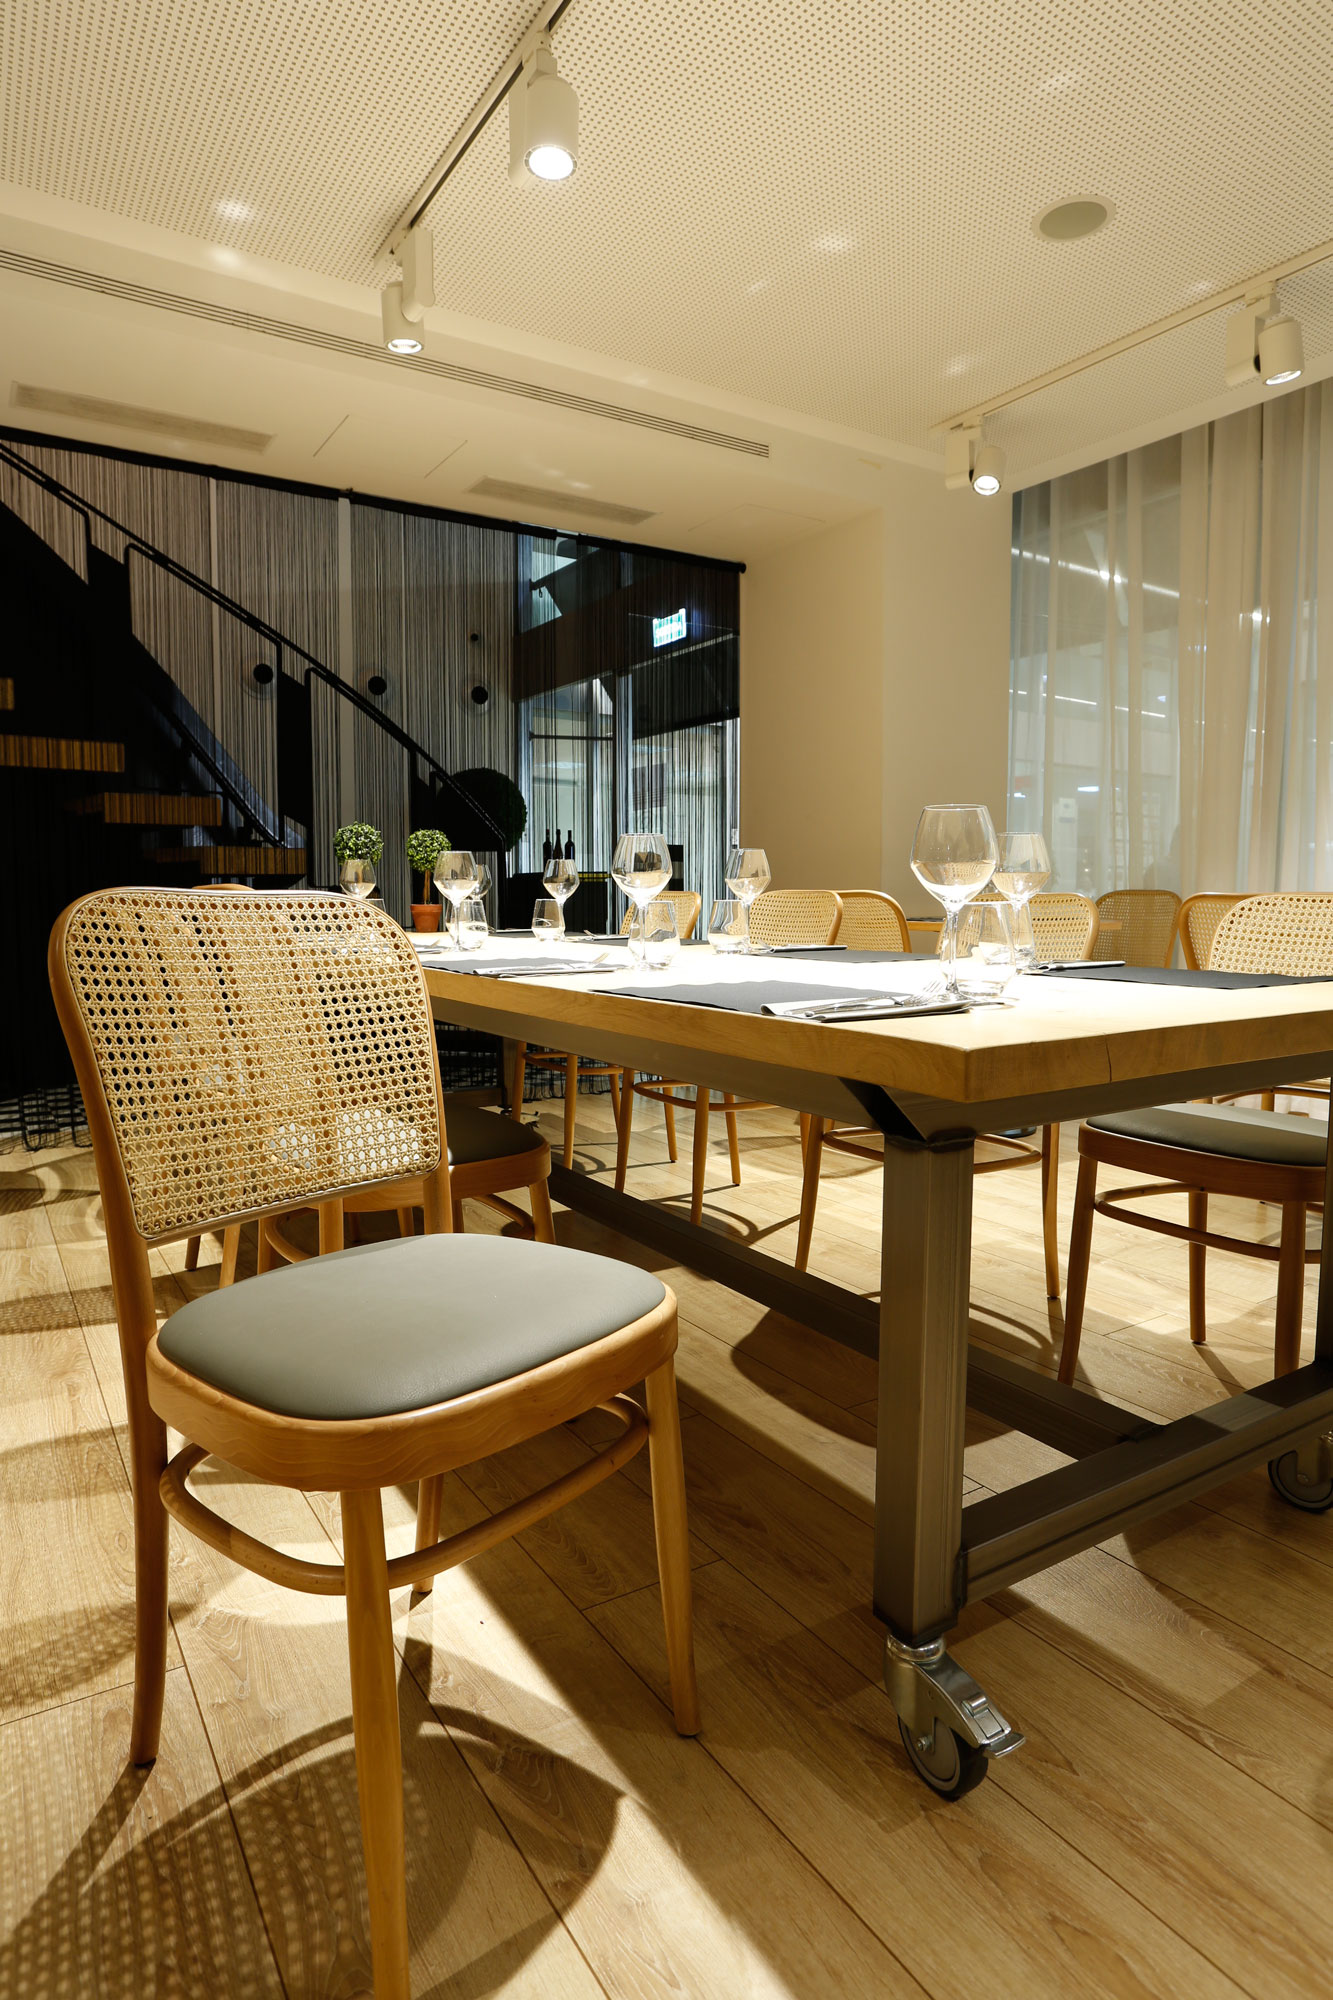 restaurant-IT-Barcelona-mobiliari-Silleria-Verges-5